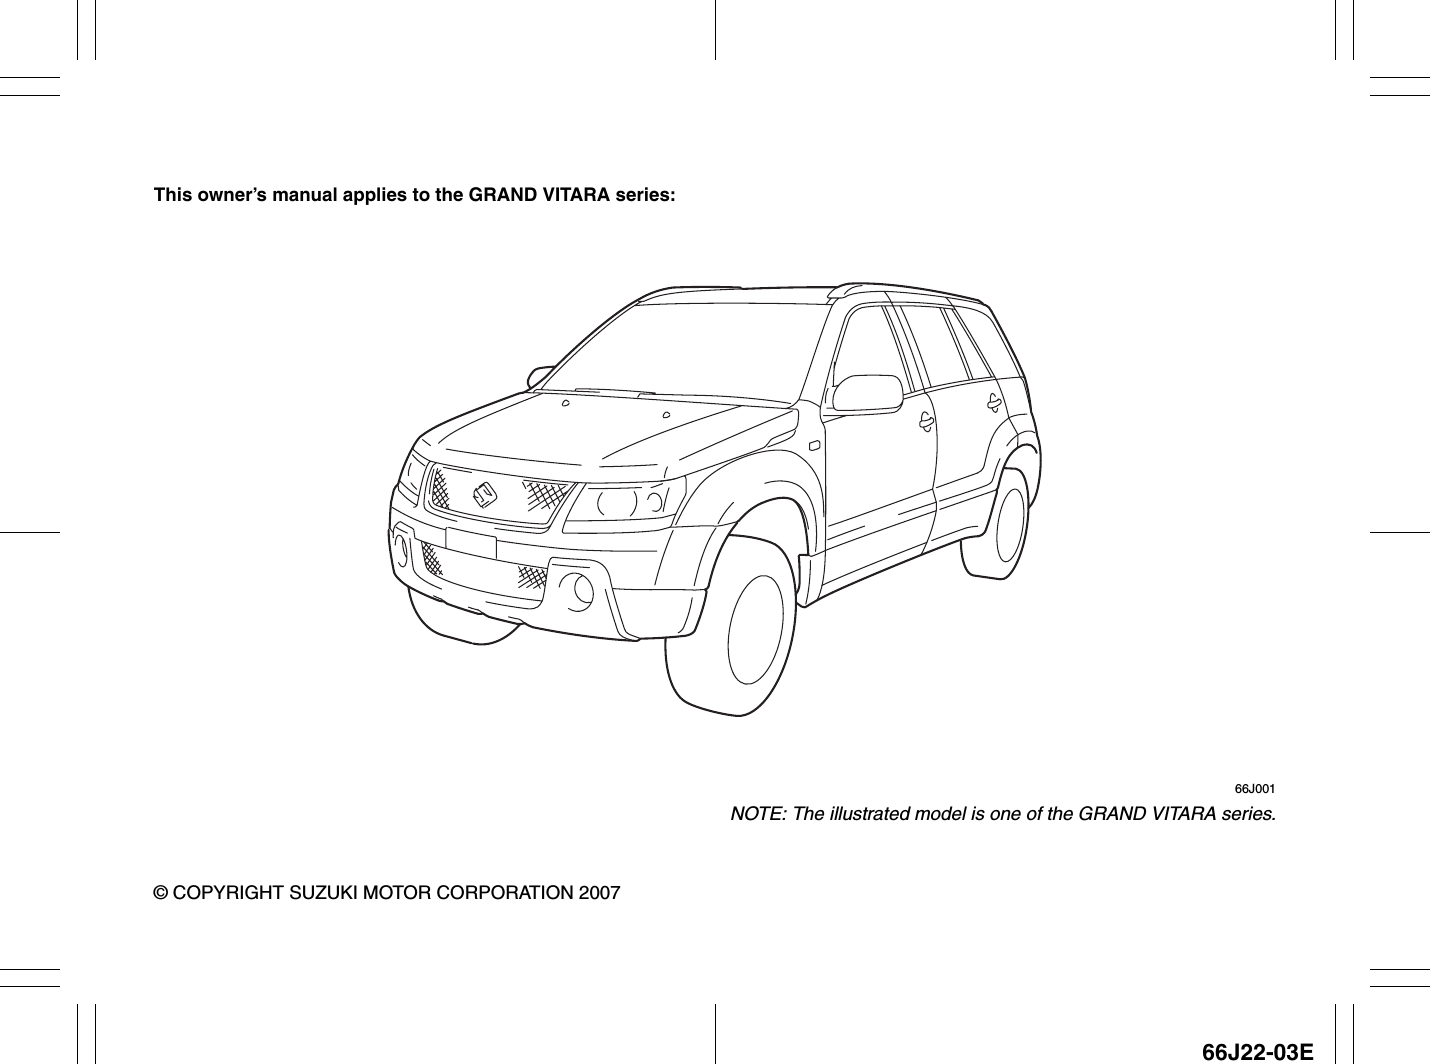 Bestseller  Suzuki Vitara User Manual Pdf